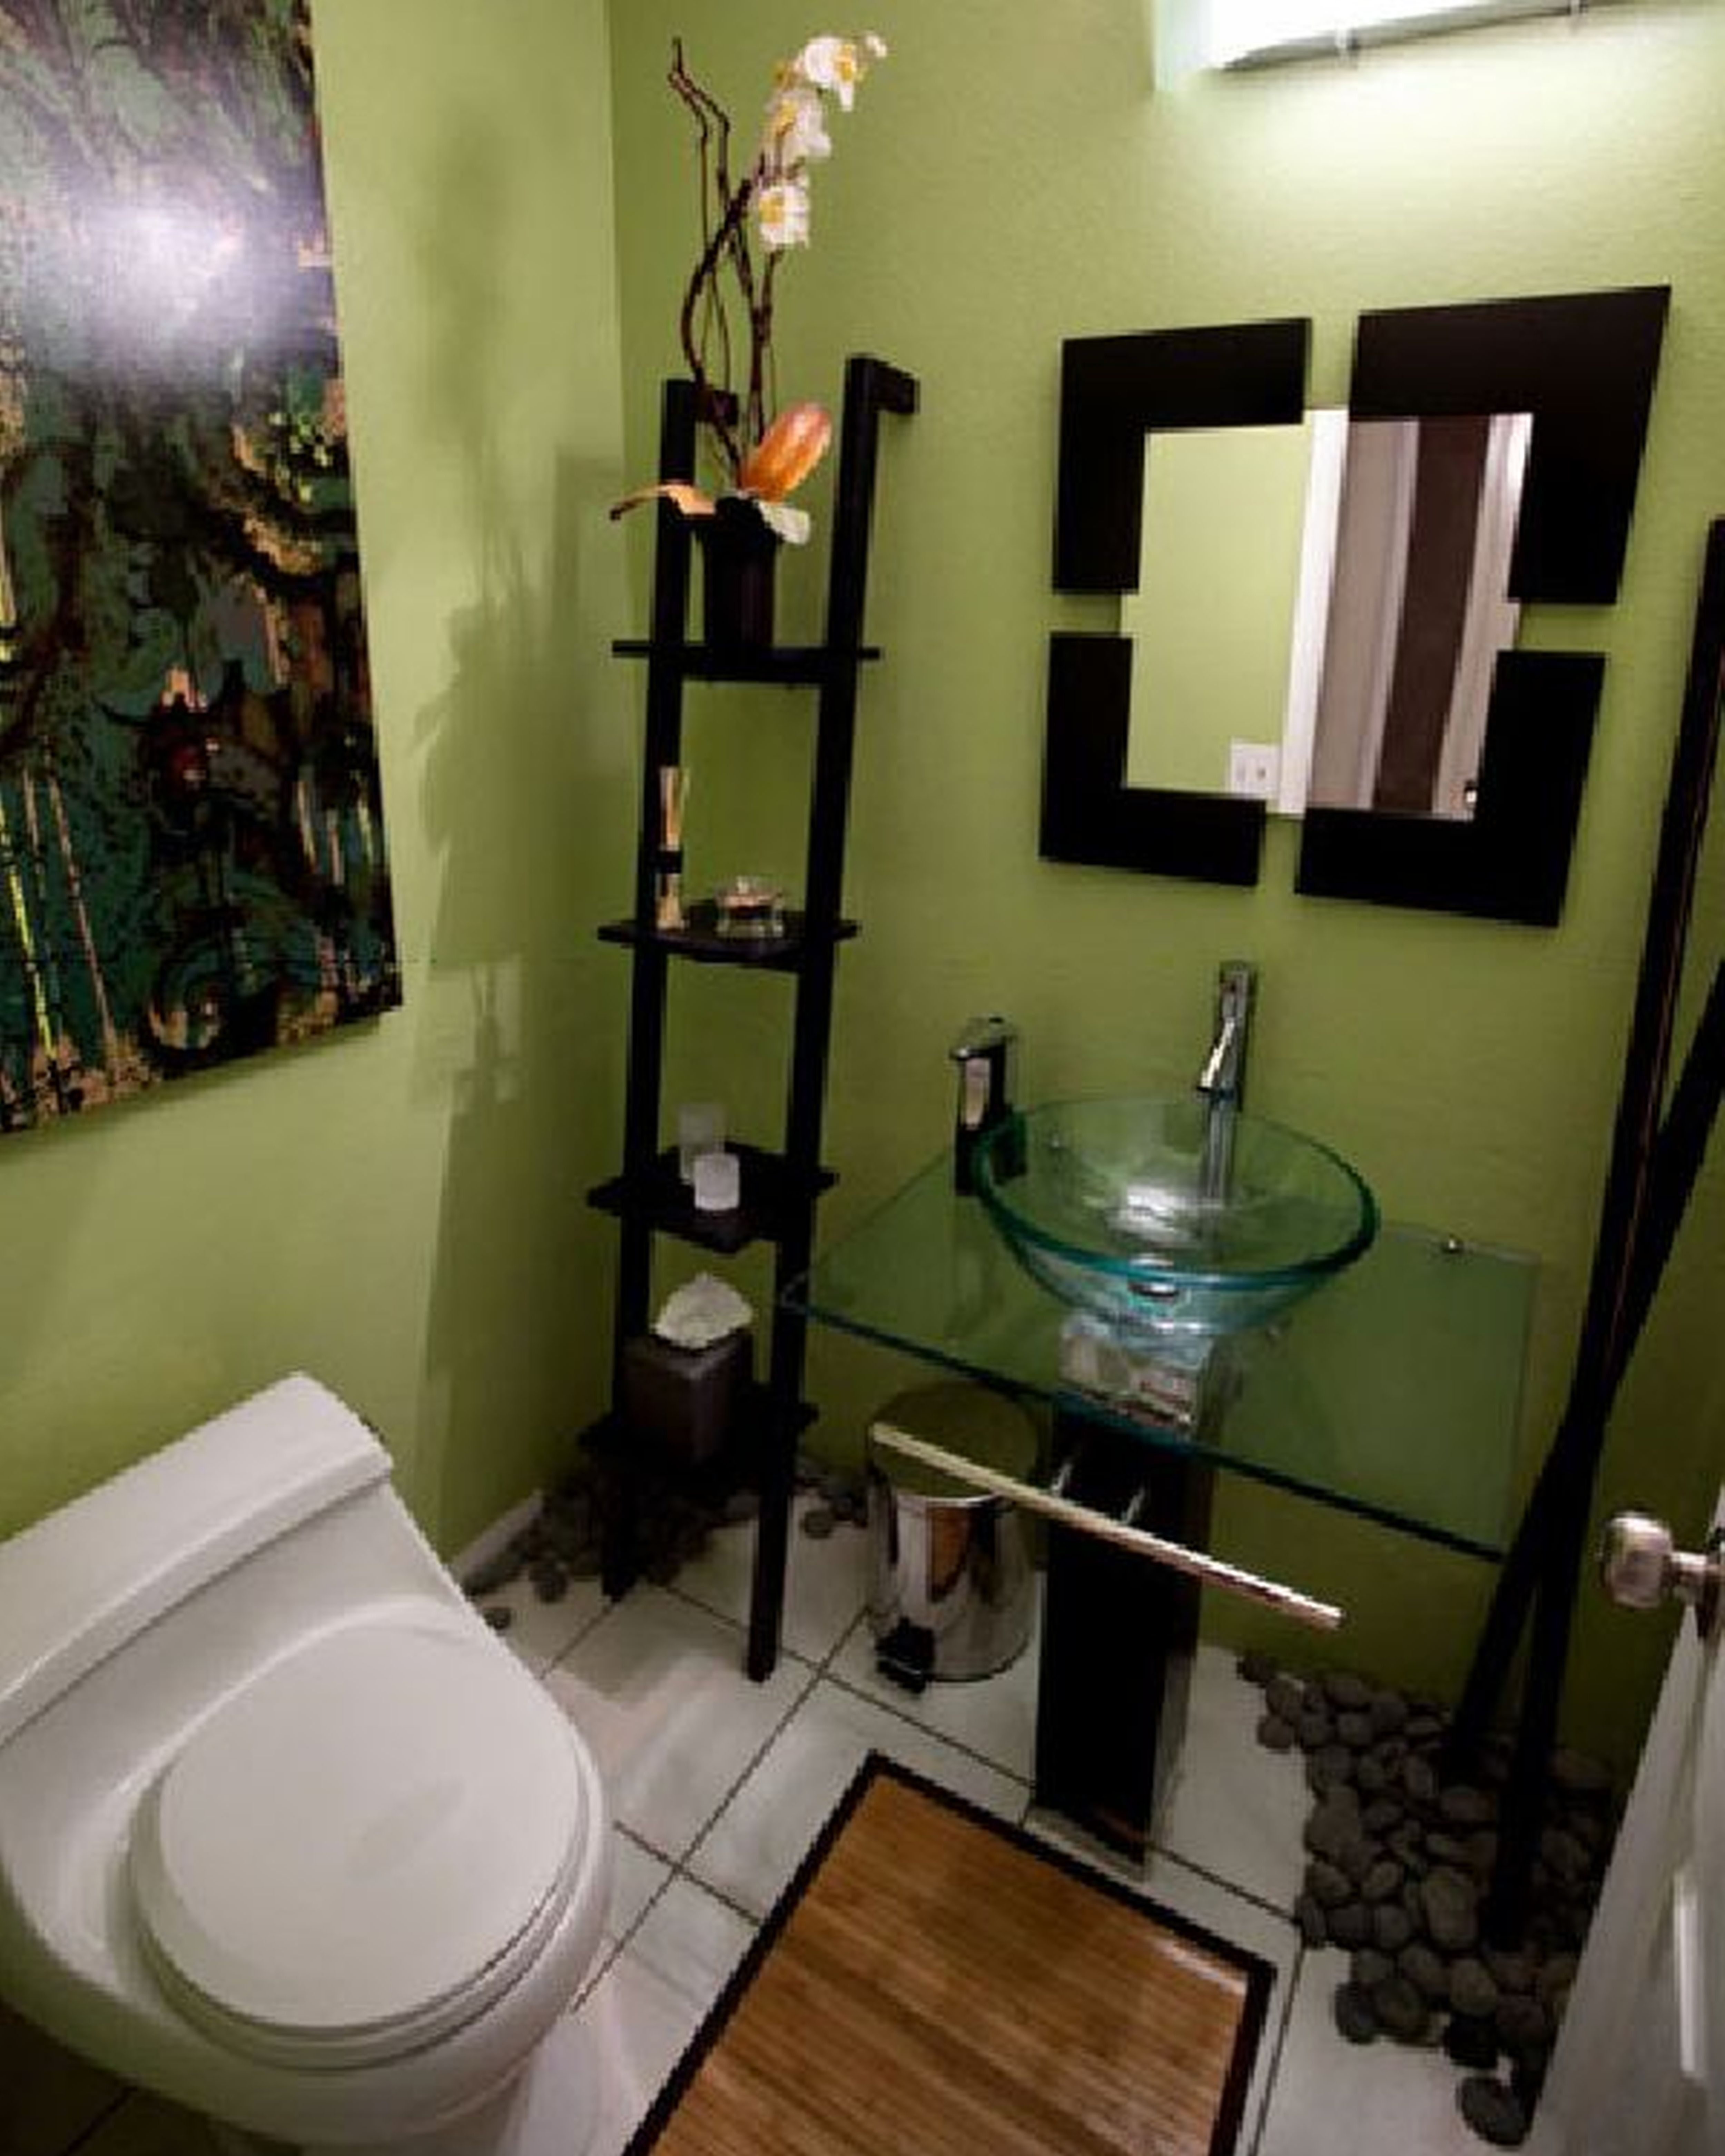 Need To Do Some Updates Around The House But Think You Lack The Funds For Any Worthwhile Home Im Bathroom Decor Apartment Bathroom Design Bathroom Design Small